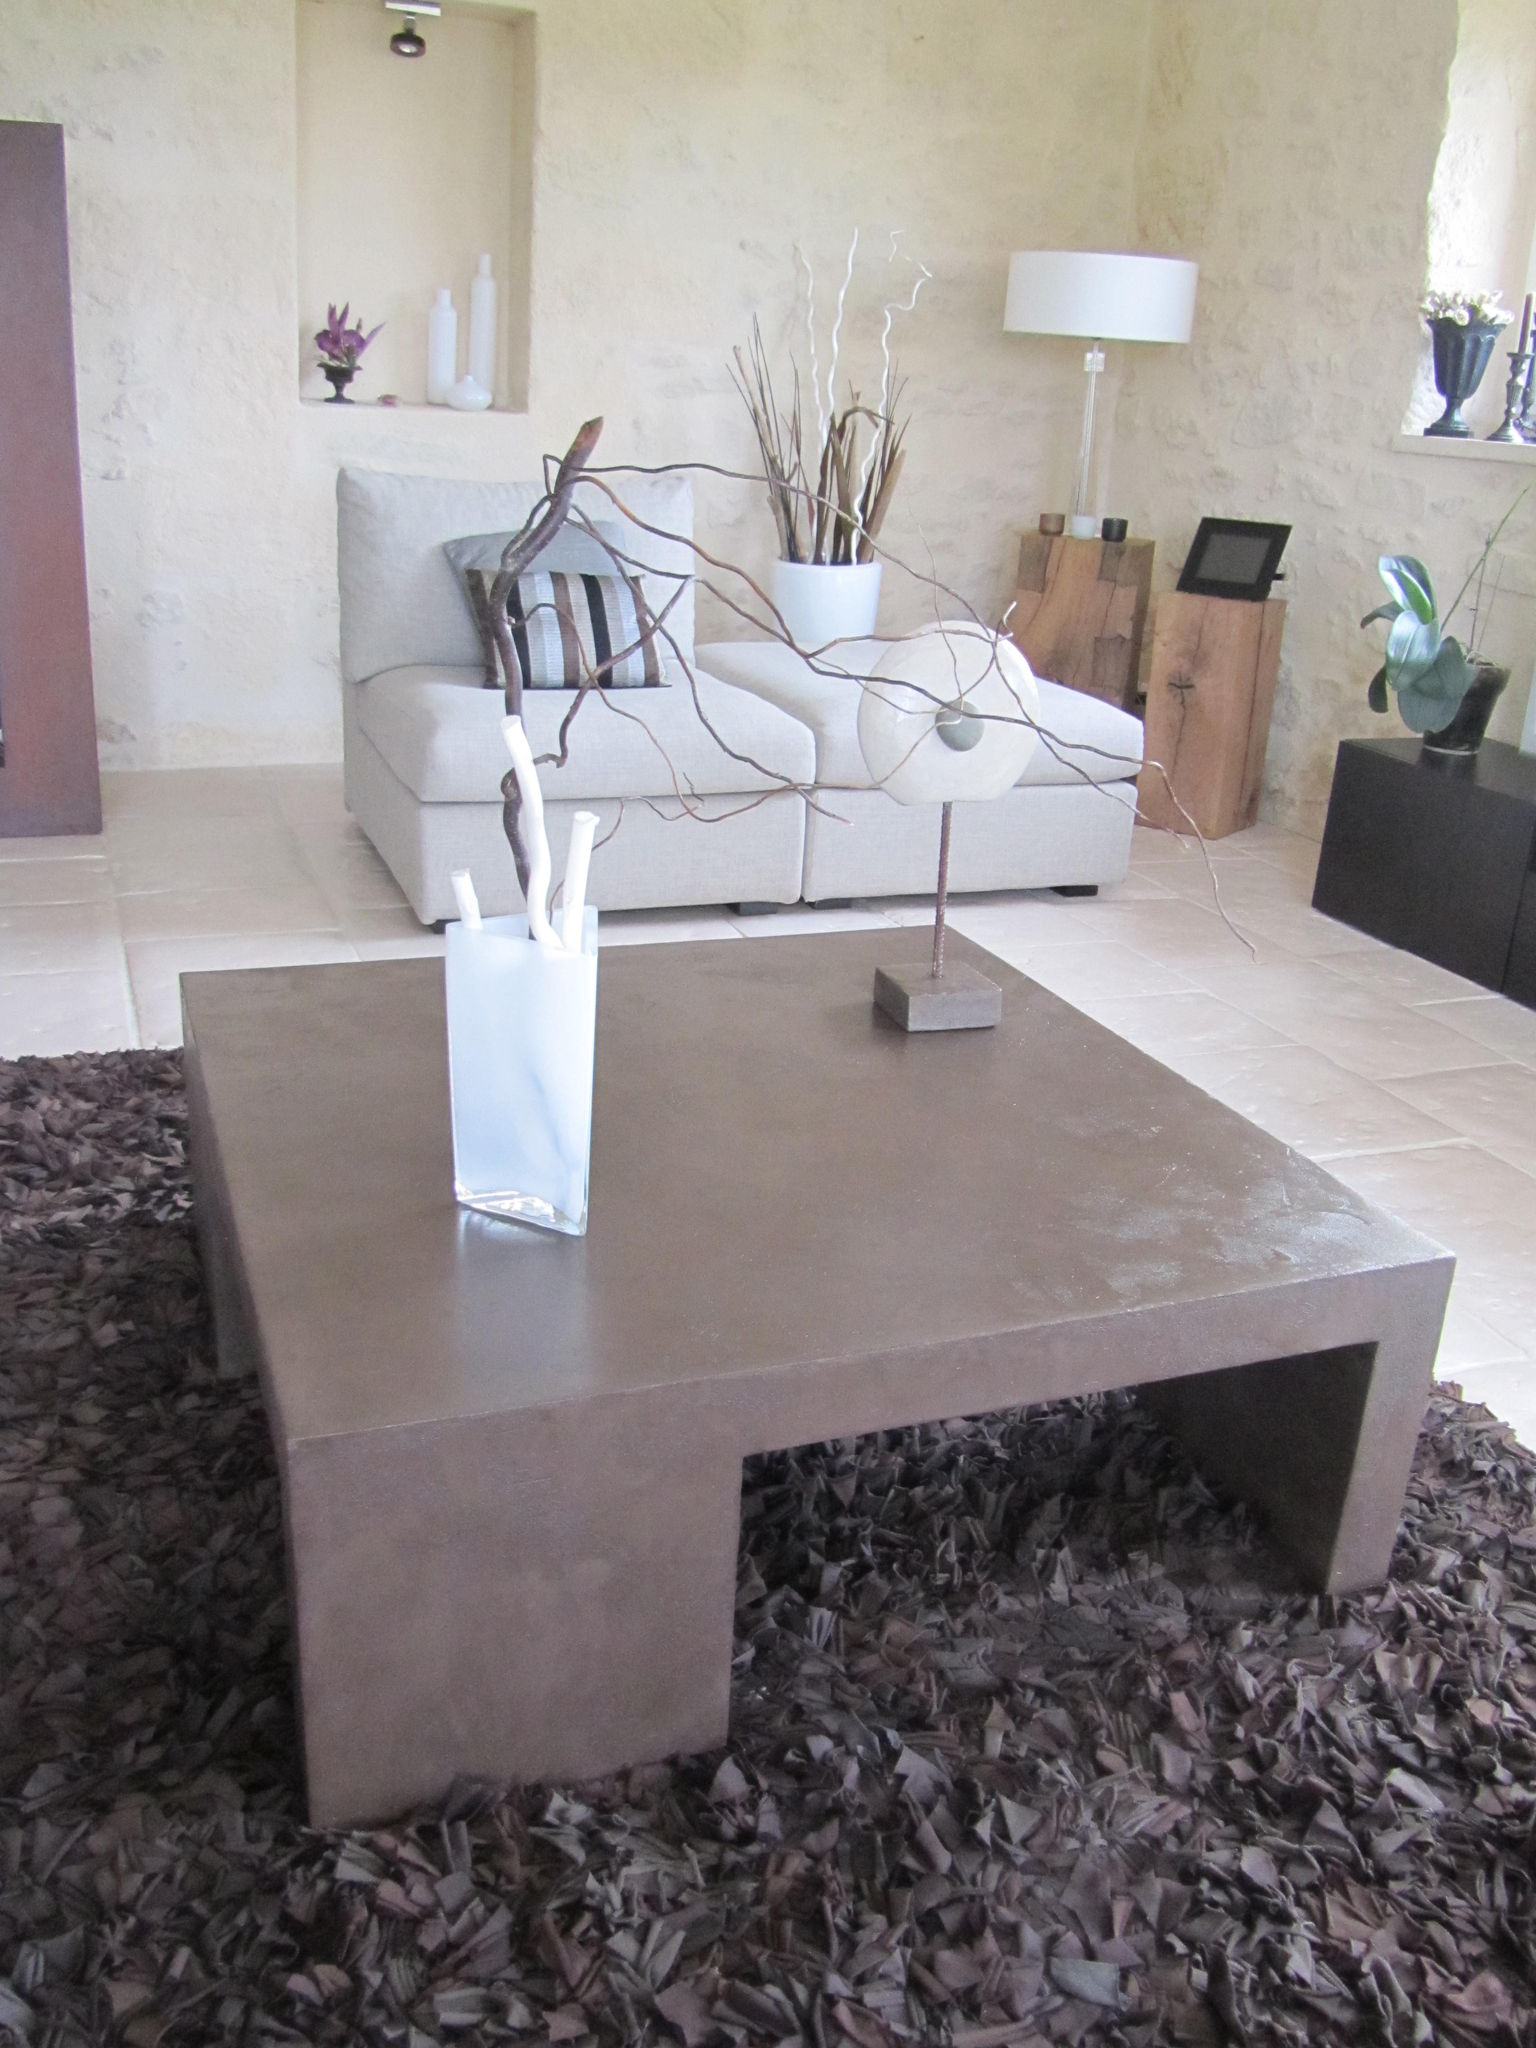 Table basse de salon en beton cire photo de beton cire le mobilier catherine pendanx - Table en beton cire ...